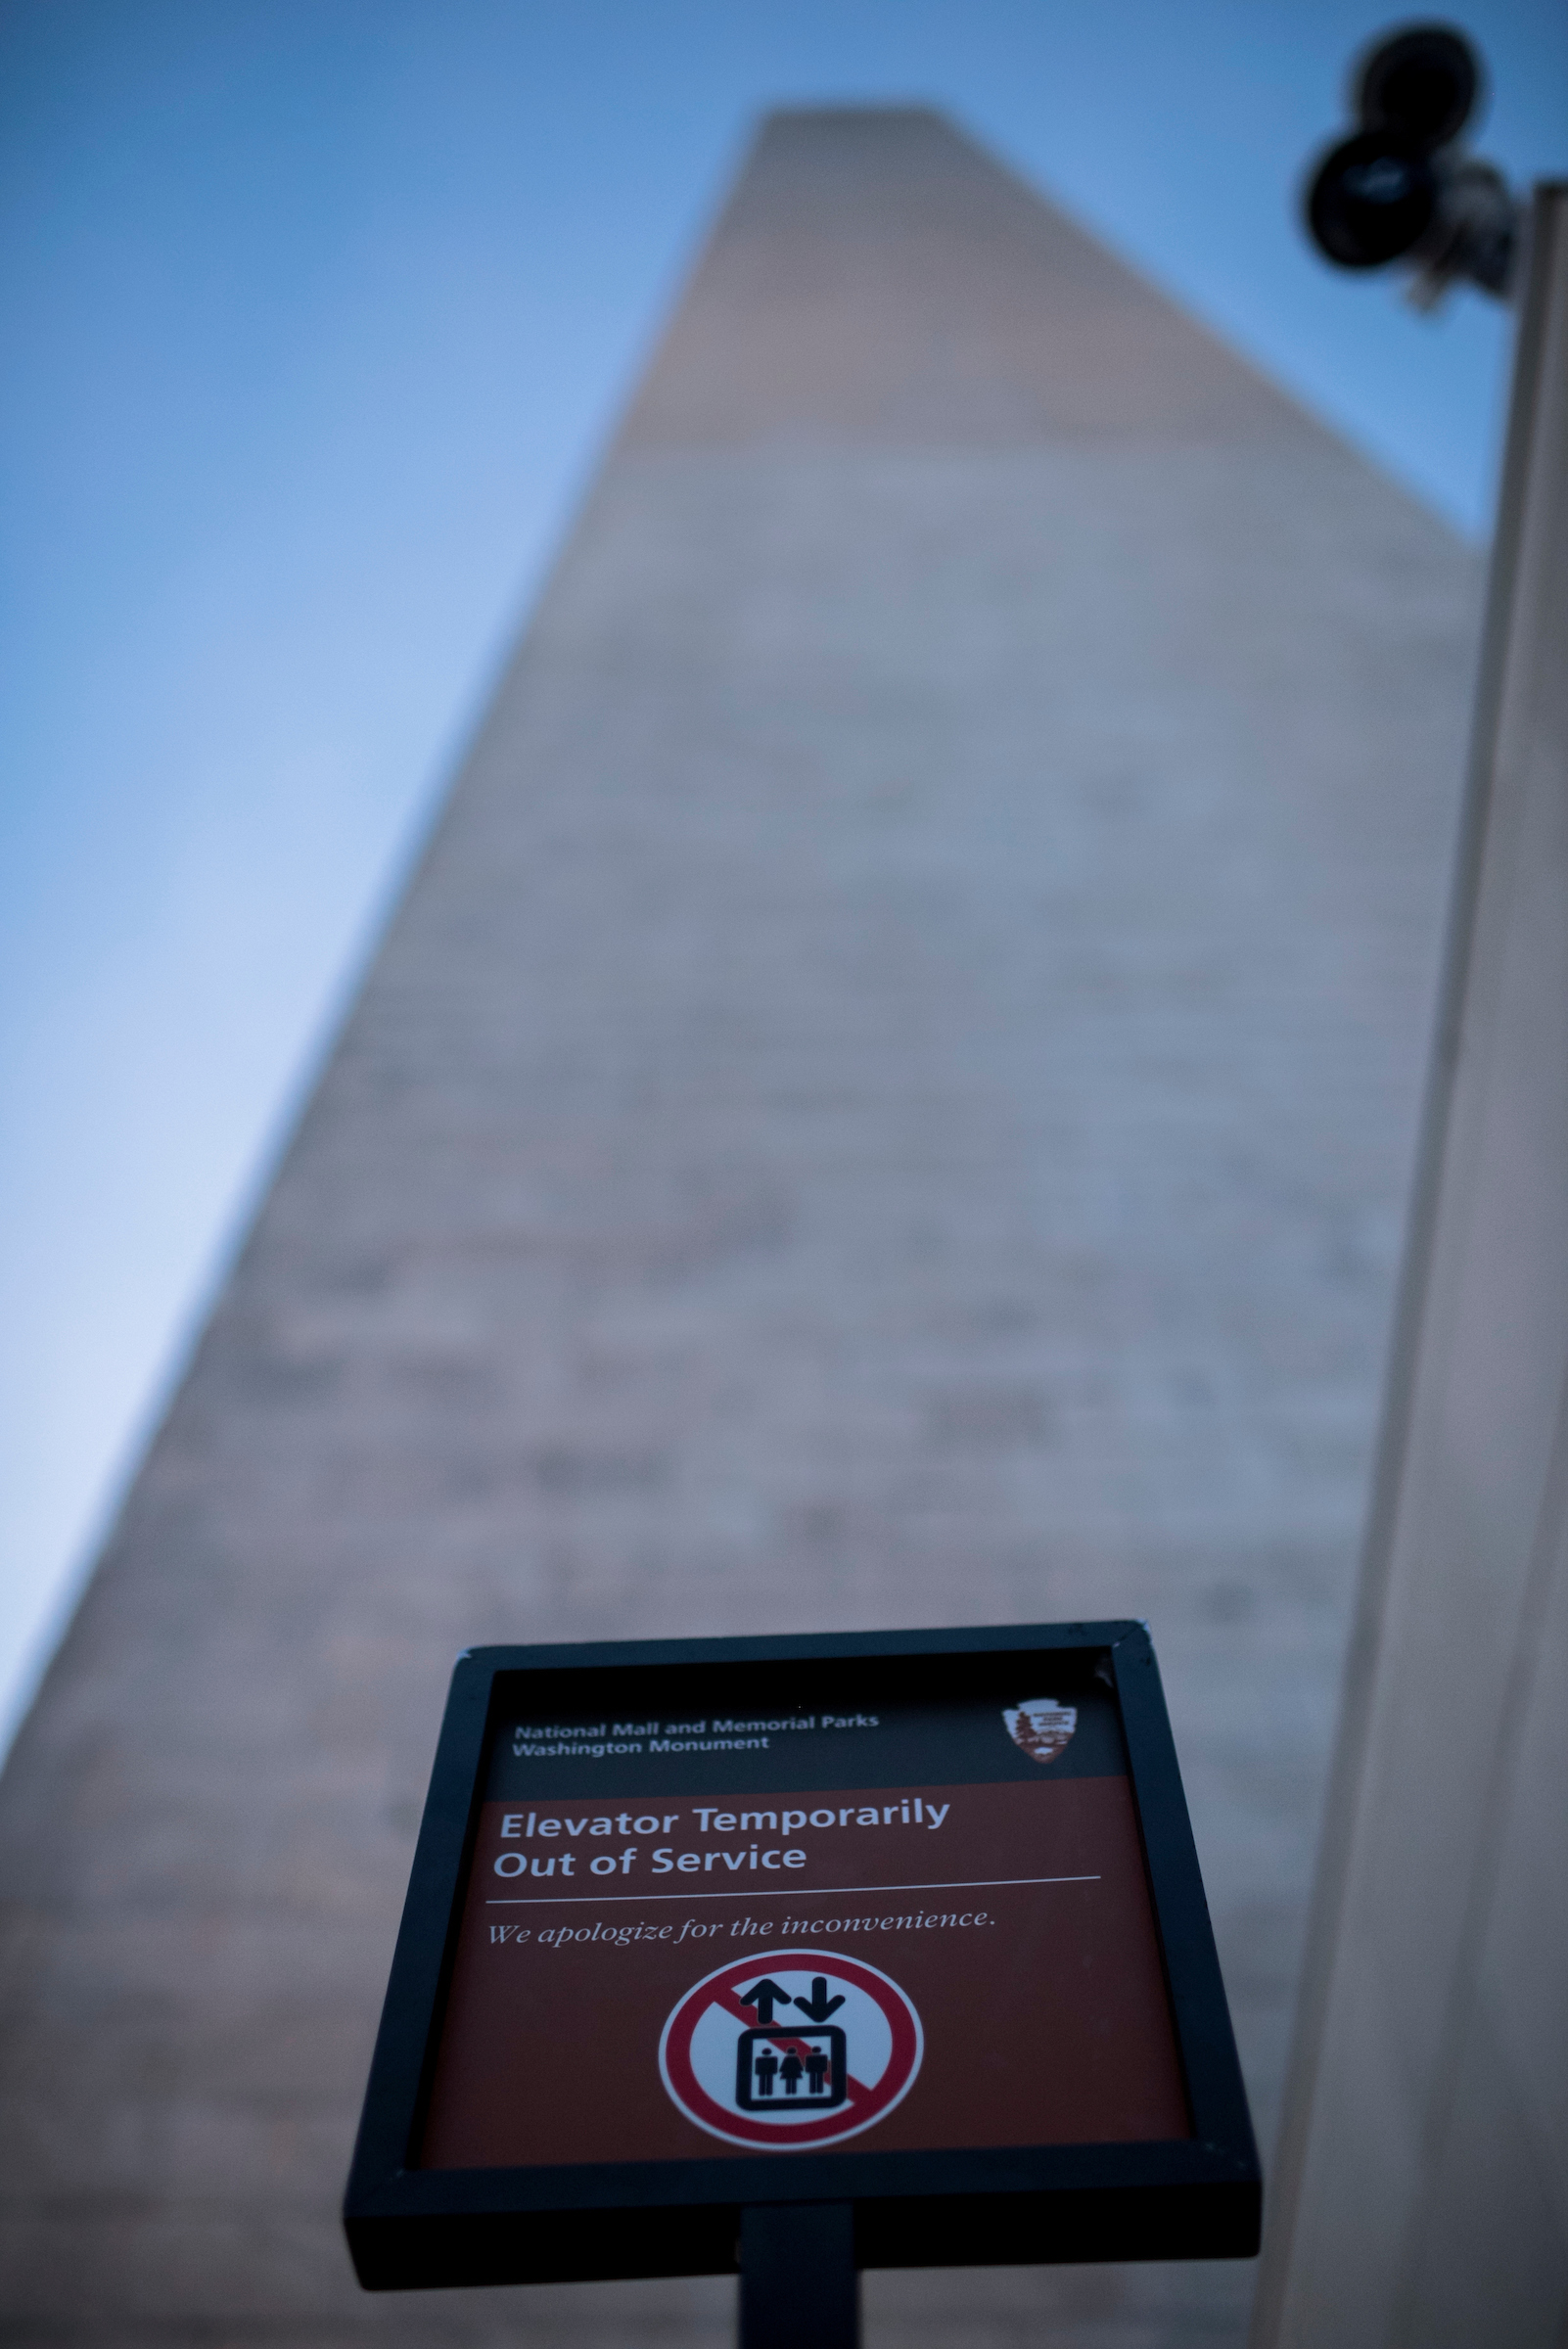 A sign notifies visitors that the elevator is out of service at the Washington Monument on Saturday, Sept. 17. (Bill Clark/CQ Roll Call)